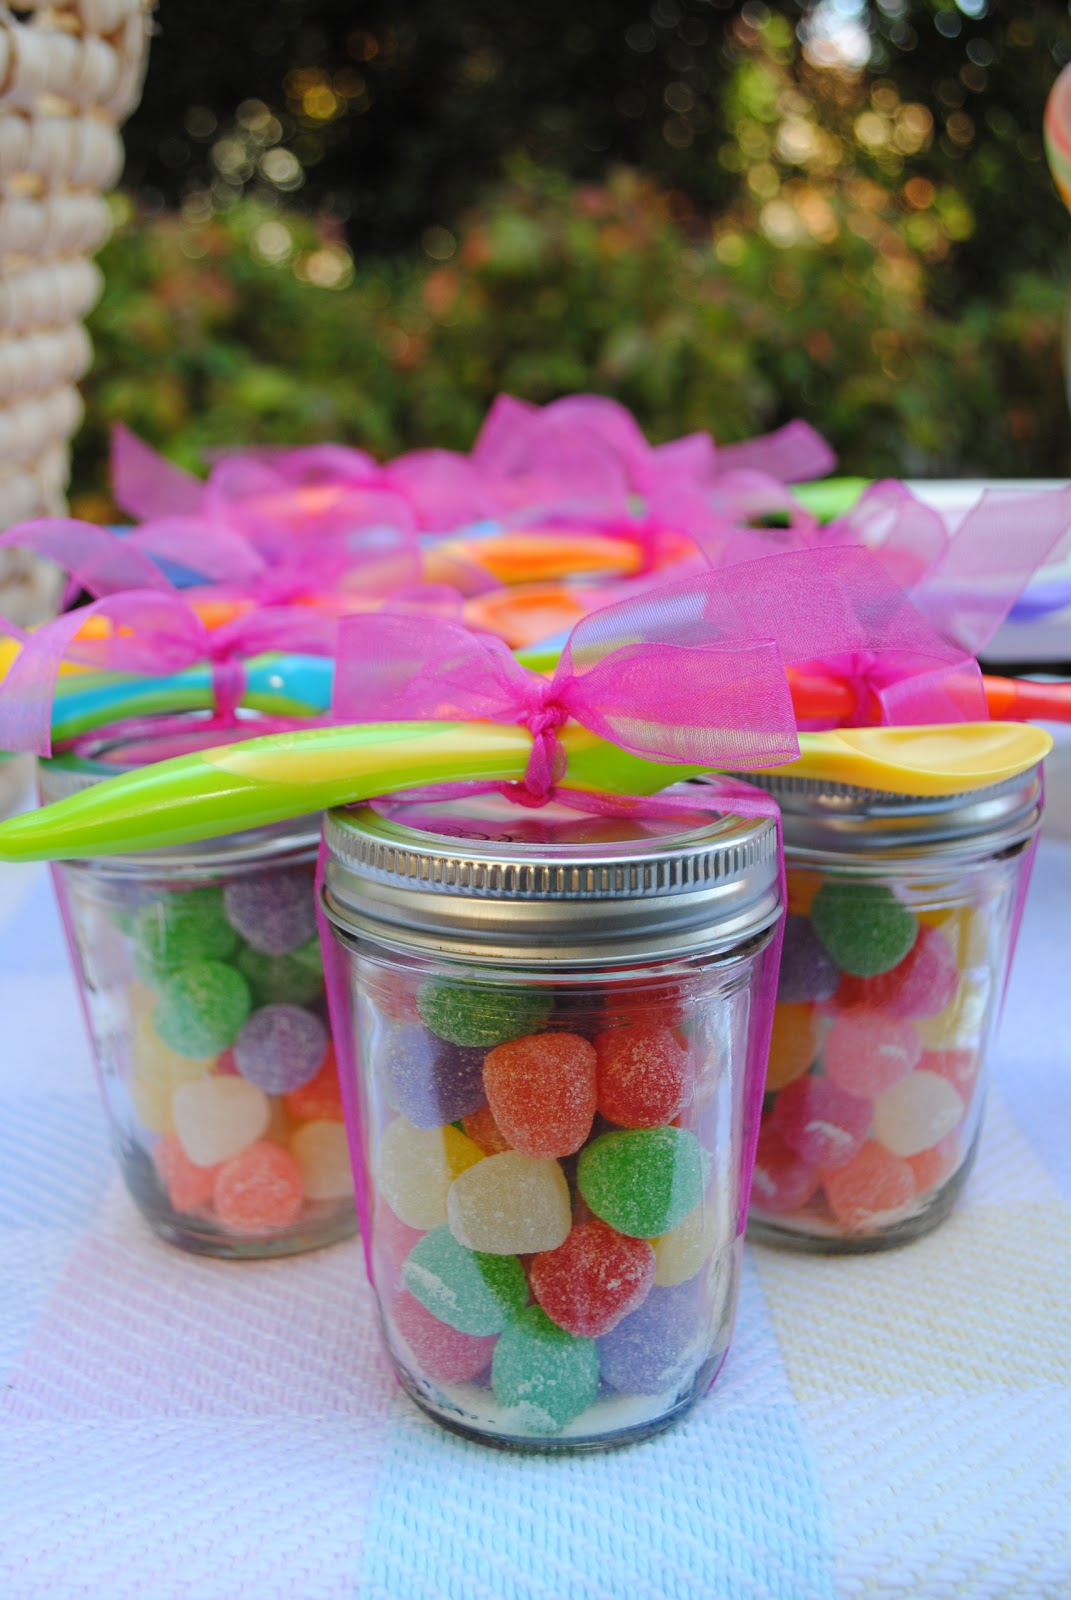 jac o 39 lyn murphy spooning up sweet baby shower favors